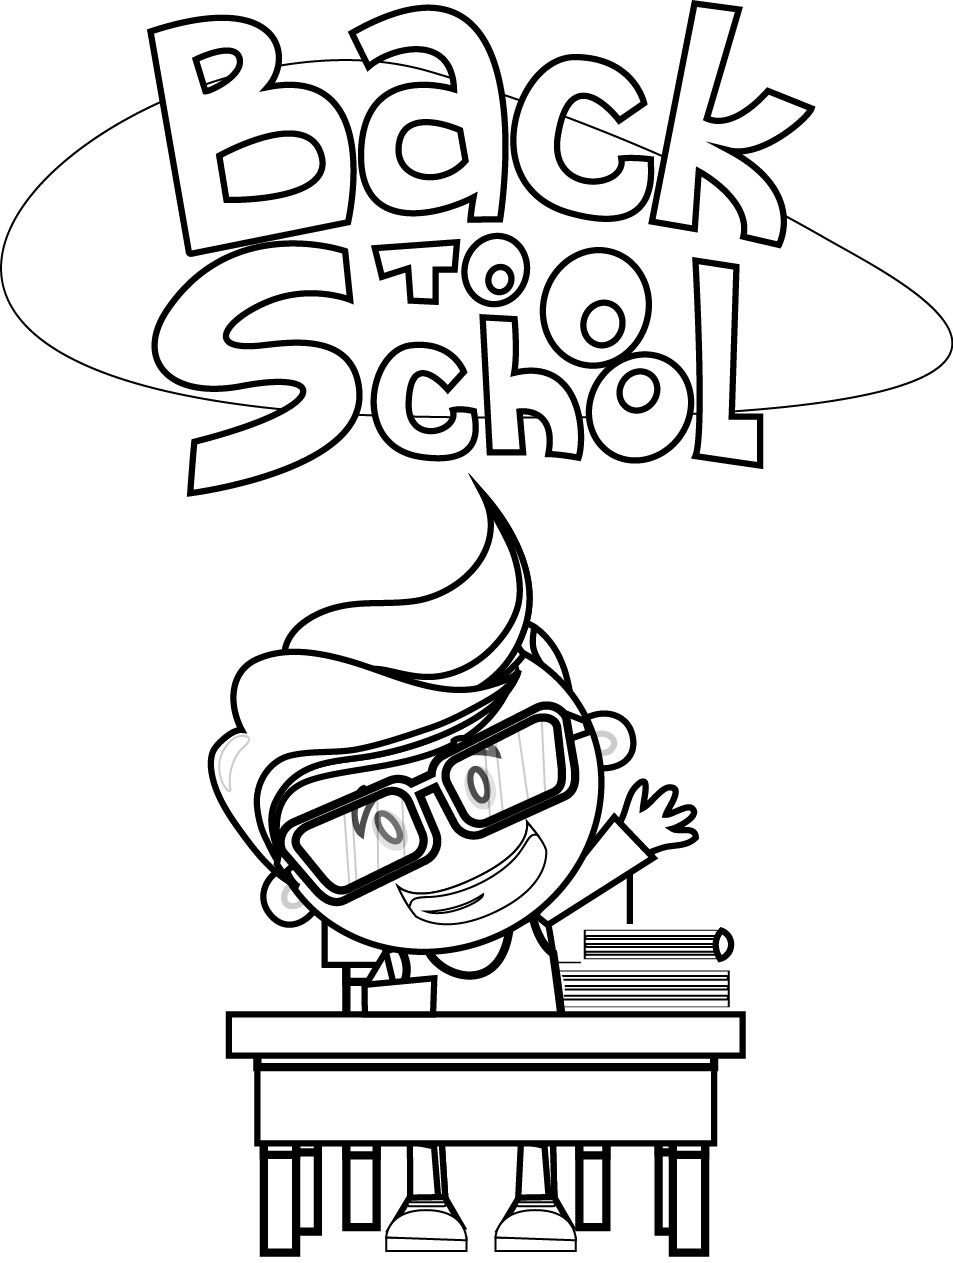 school kids coloring pages | Student Coloring Pages | Wecoloringpage.com